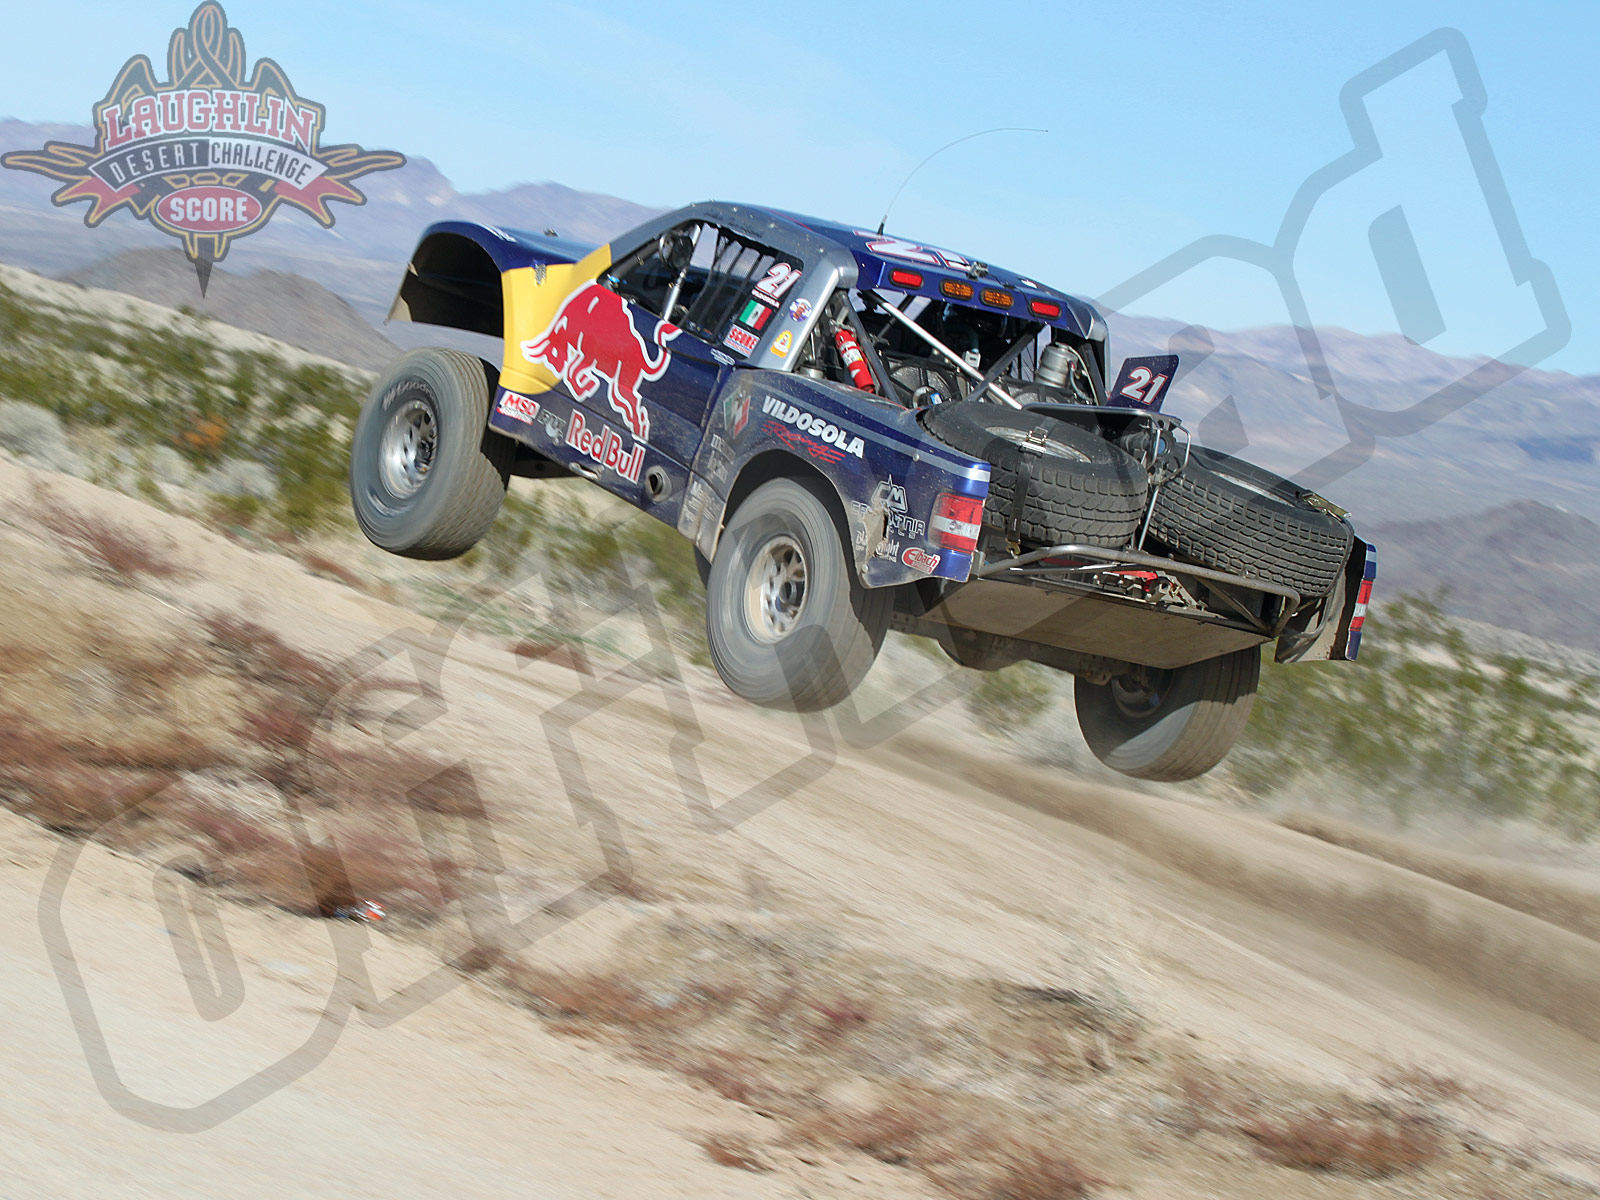 030311or 6844+2011 score laughlin desert challenge+trophy trucks sunday